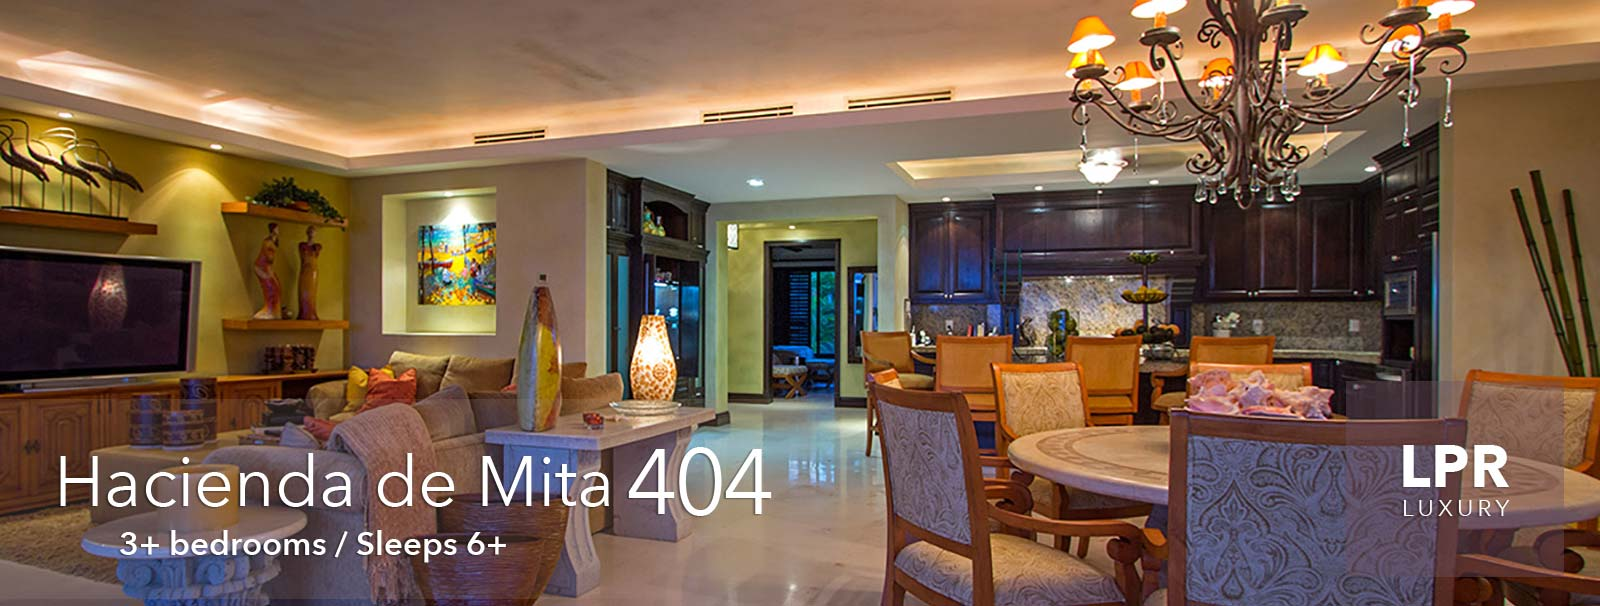 Hacienda de Mita 404 - Punta Mita Mexico - Luxury condo for sale